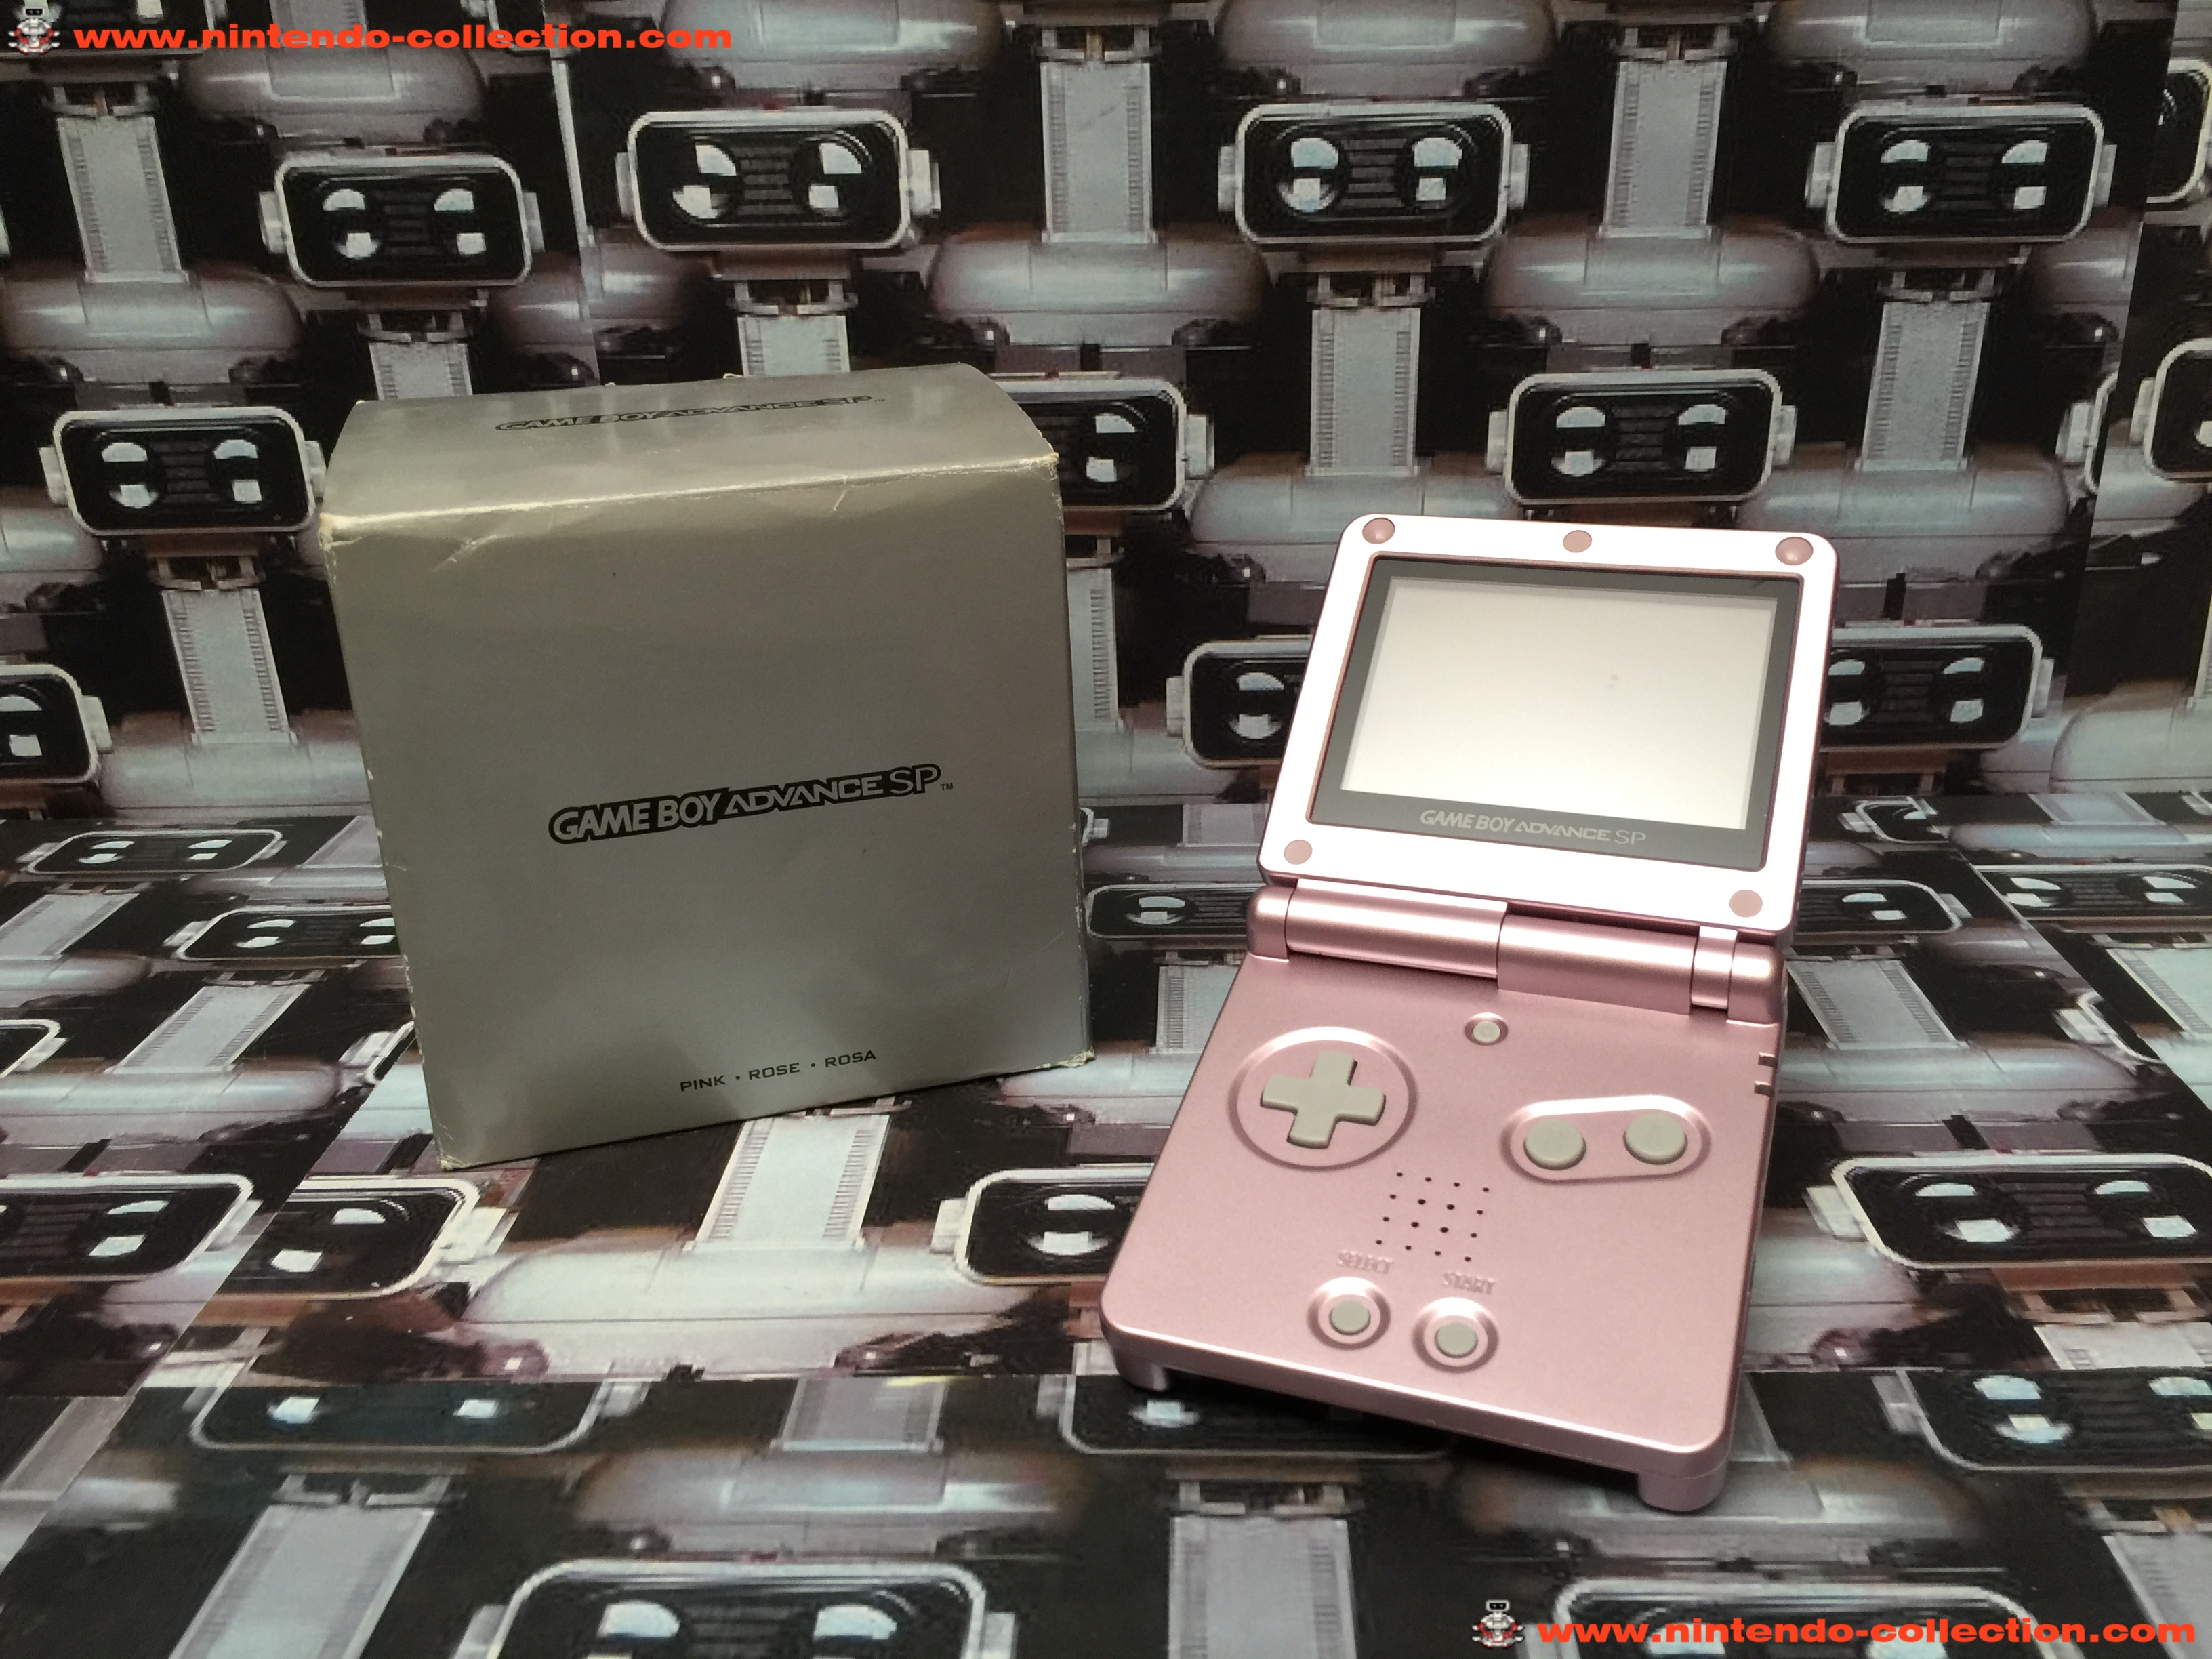 www.nintendo-collection.com - Gameboy Advance GBA SP Pink Rose Edition europeenne european - 03